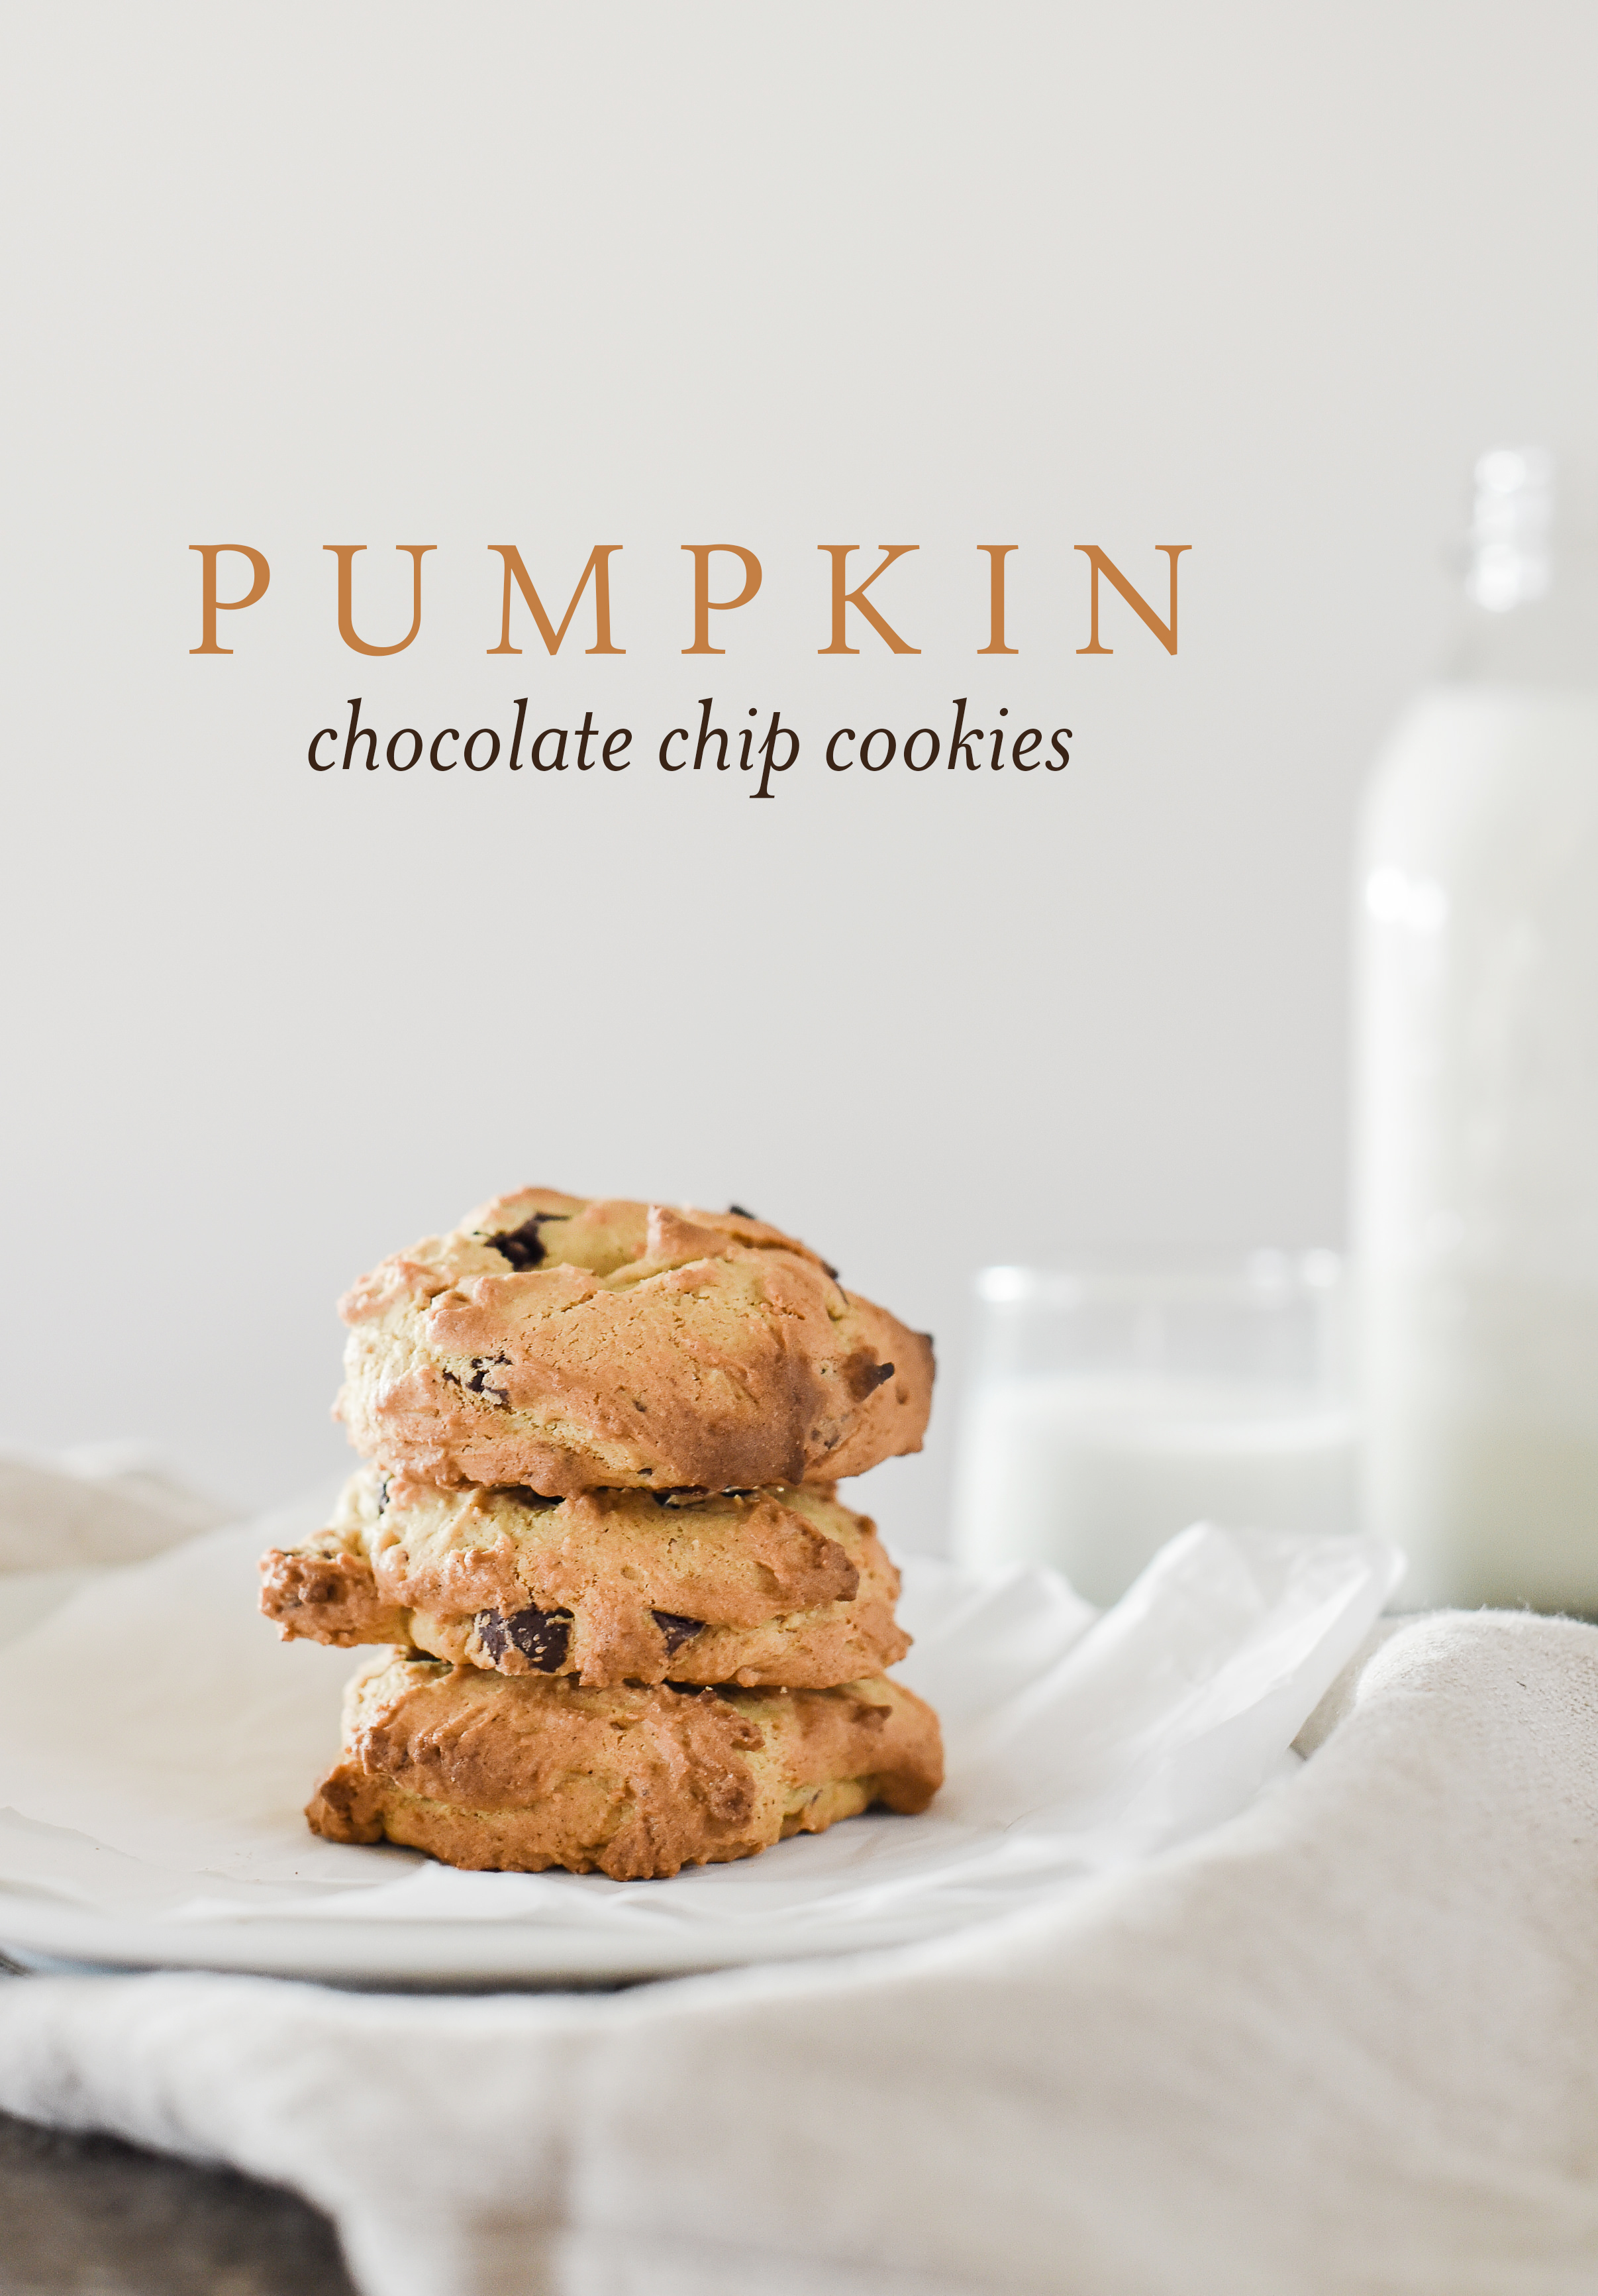 These are the best pumpkin chocolate chip cookies you'll ever have! #pumpkinrecipes #pumpkinspice